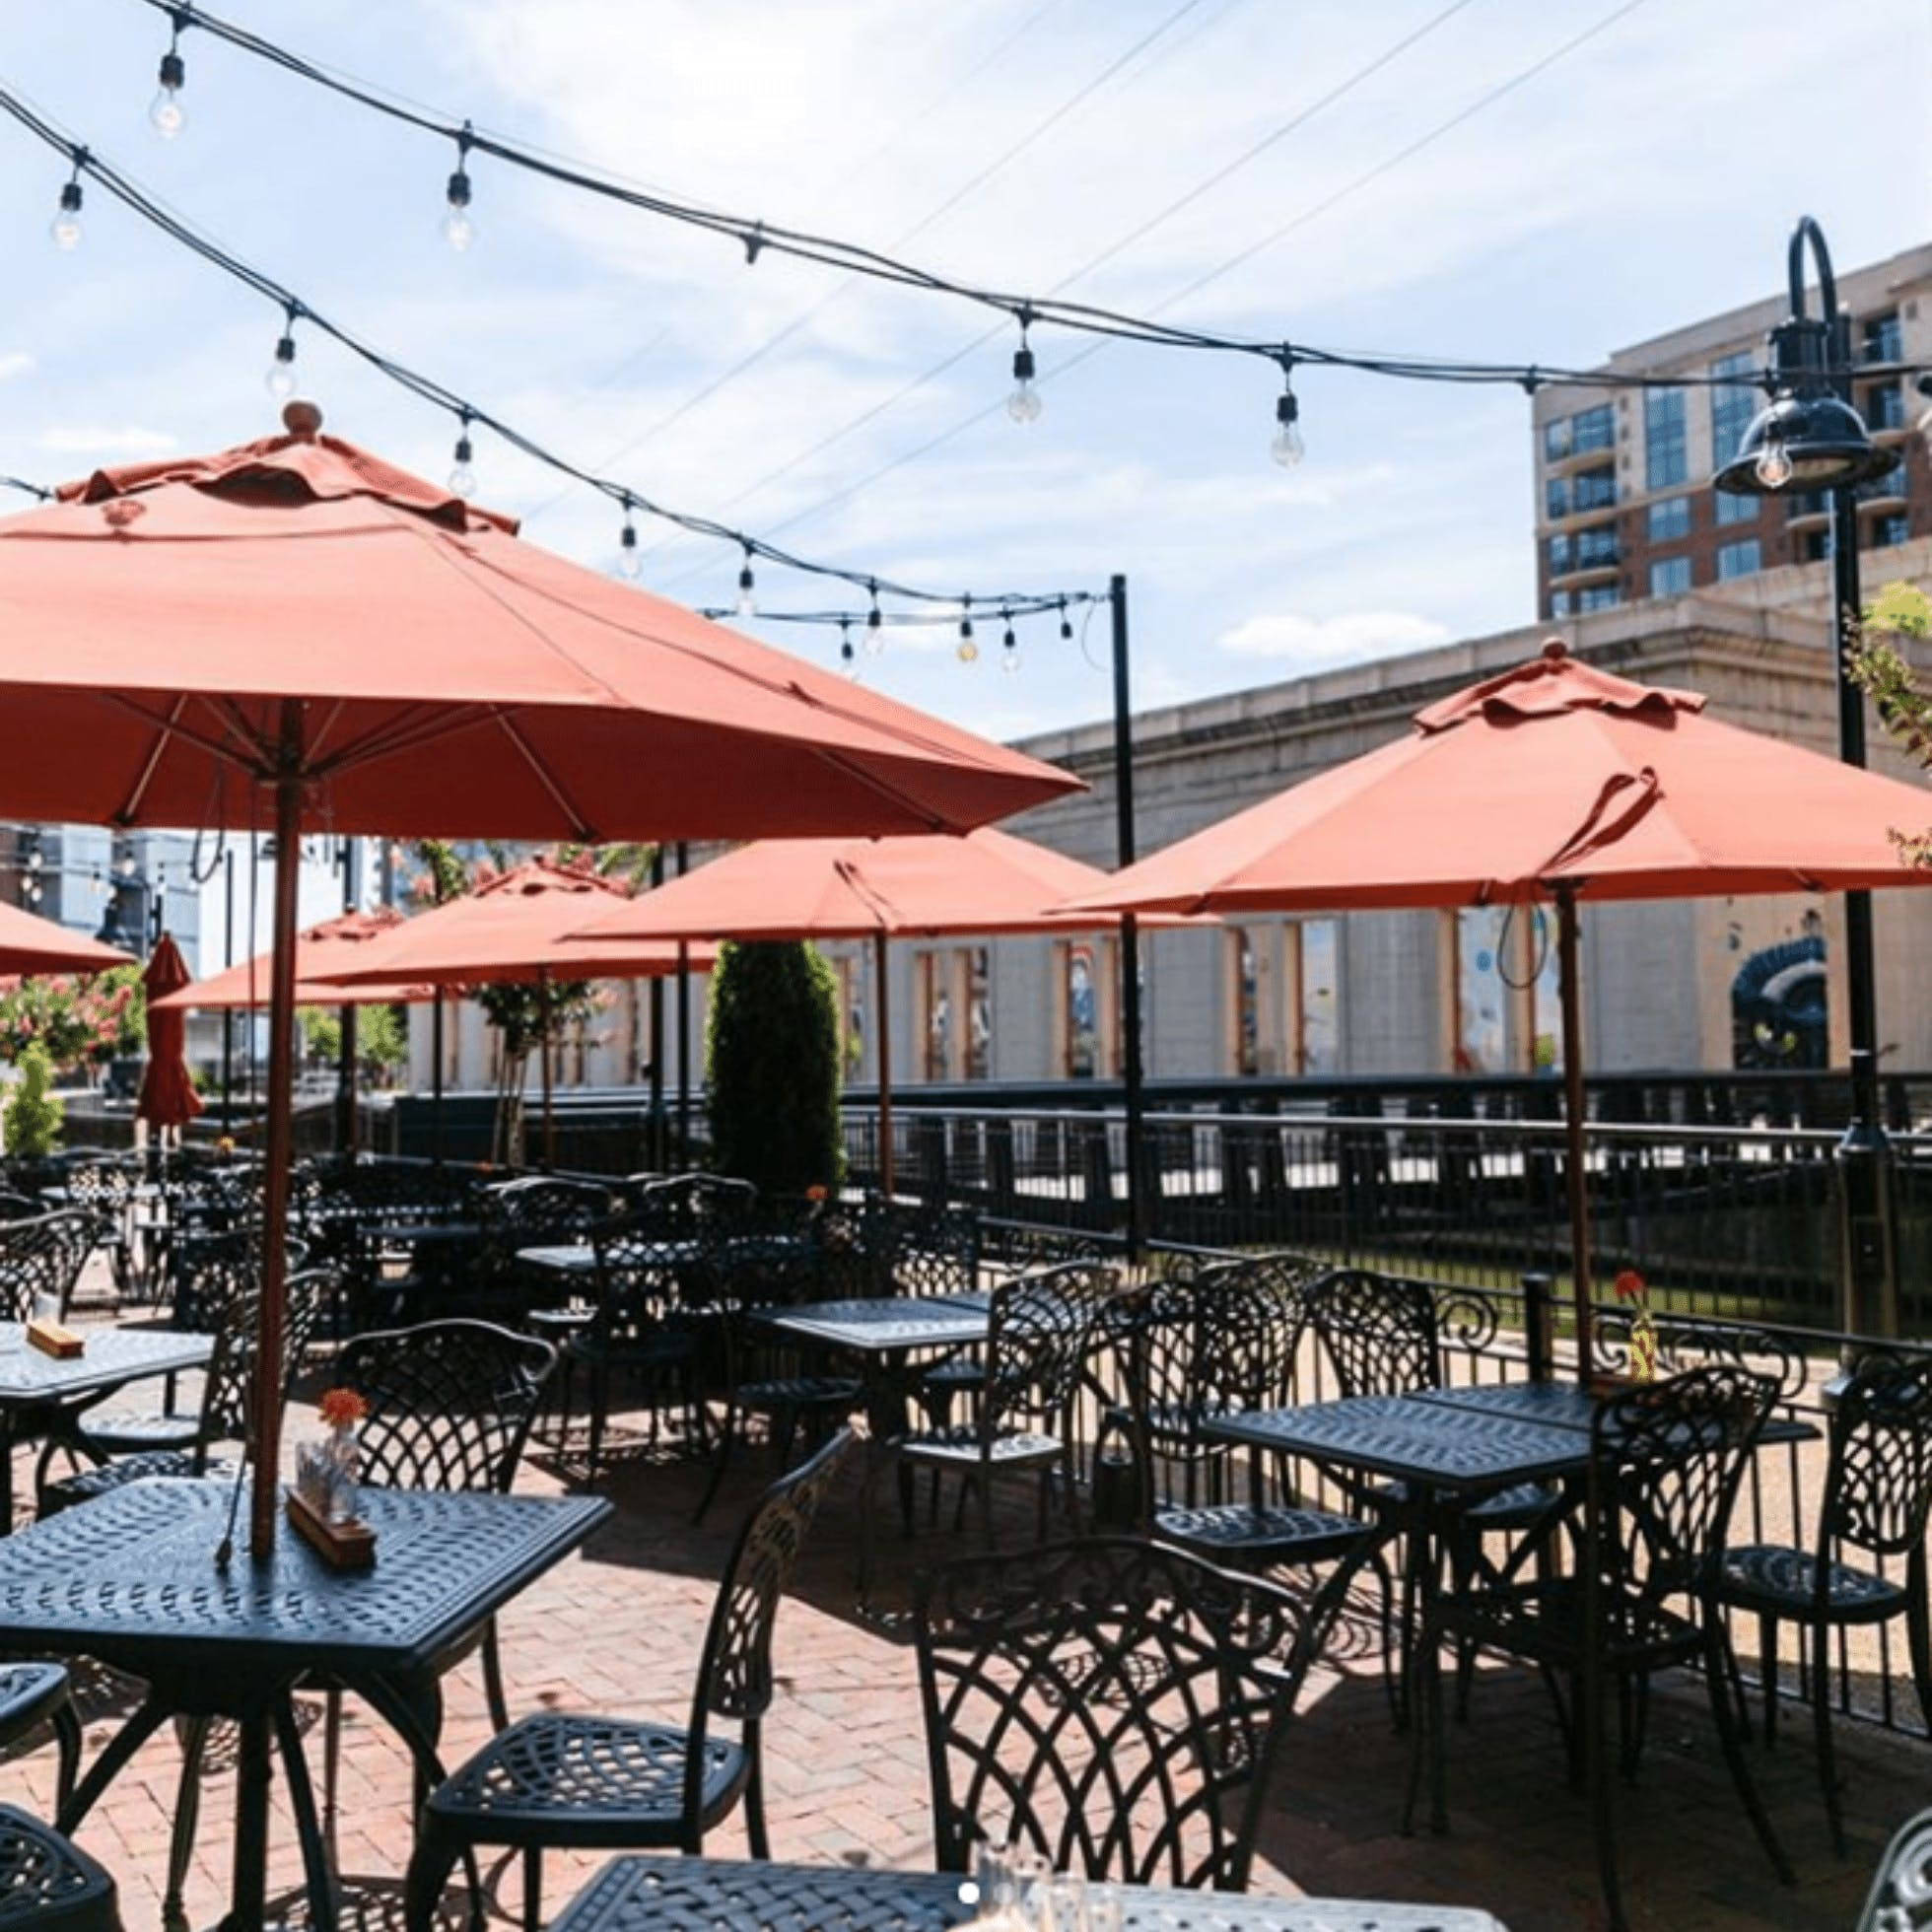 Casa del Barco  - 15 Restaurants for Outdoor Dining in Downtown Richmond